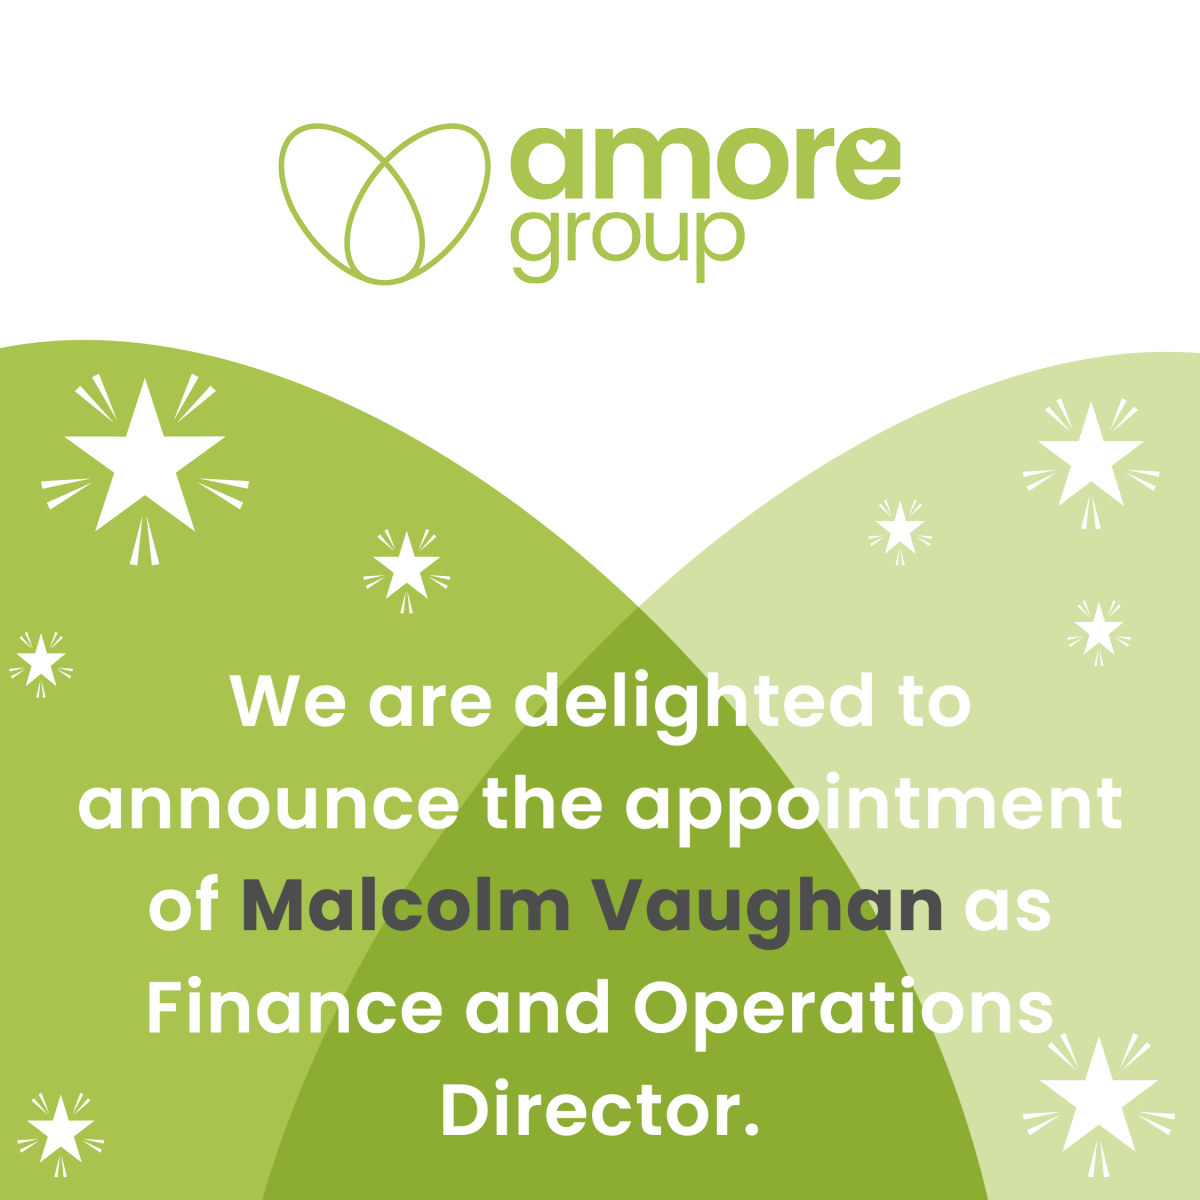 Congratulations to Malcolm Vaughan on the appointment of Finance and Operations Director